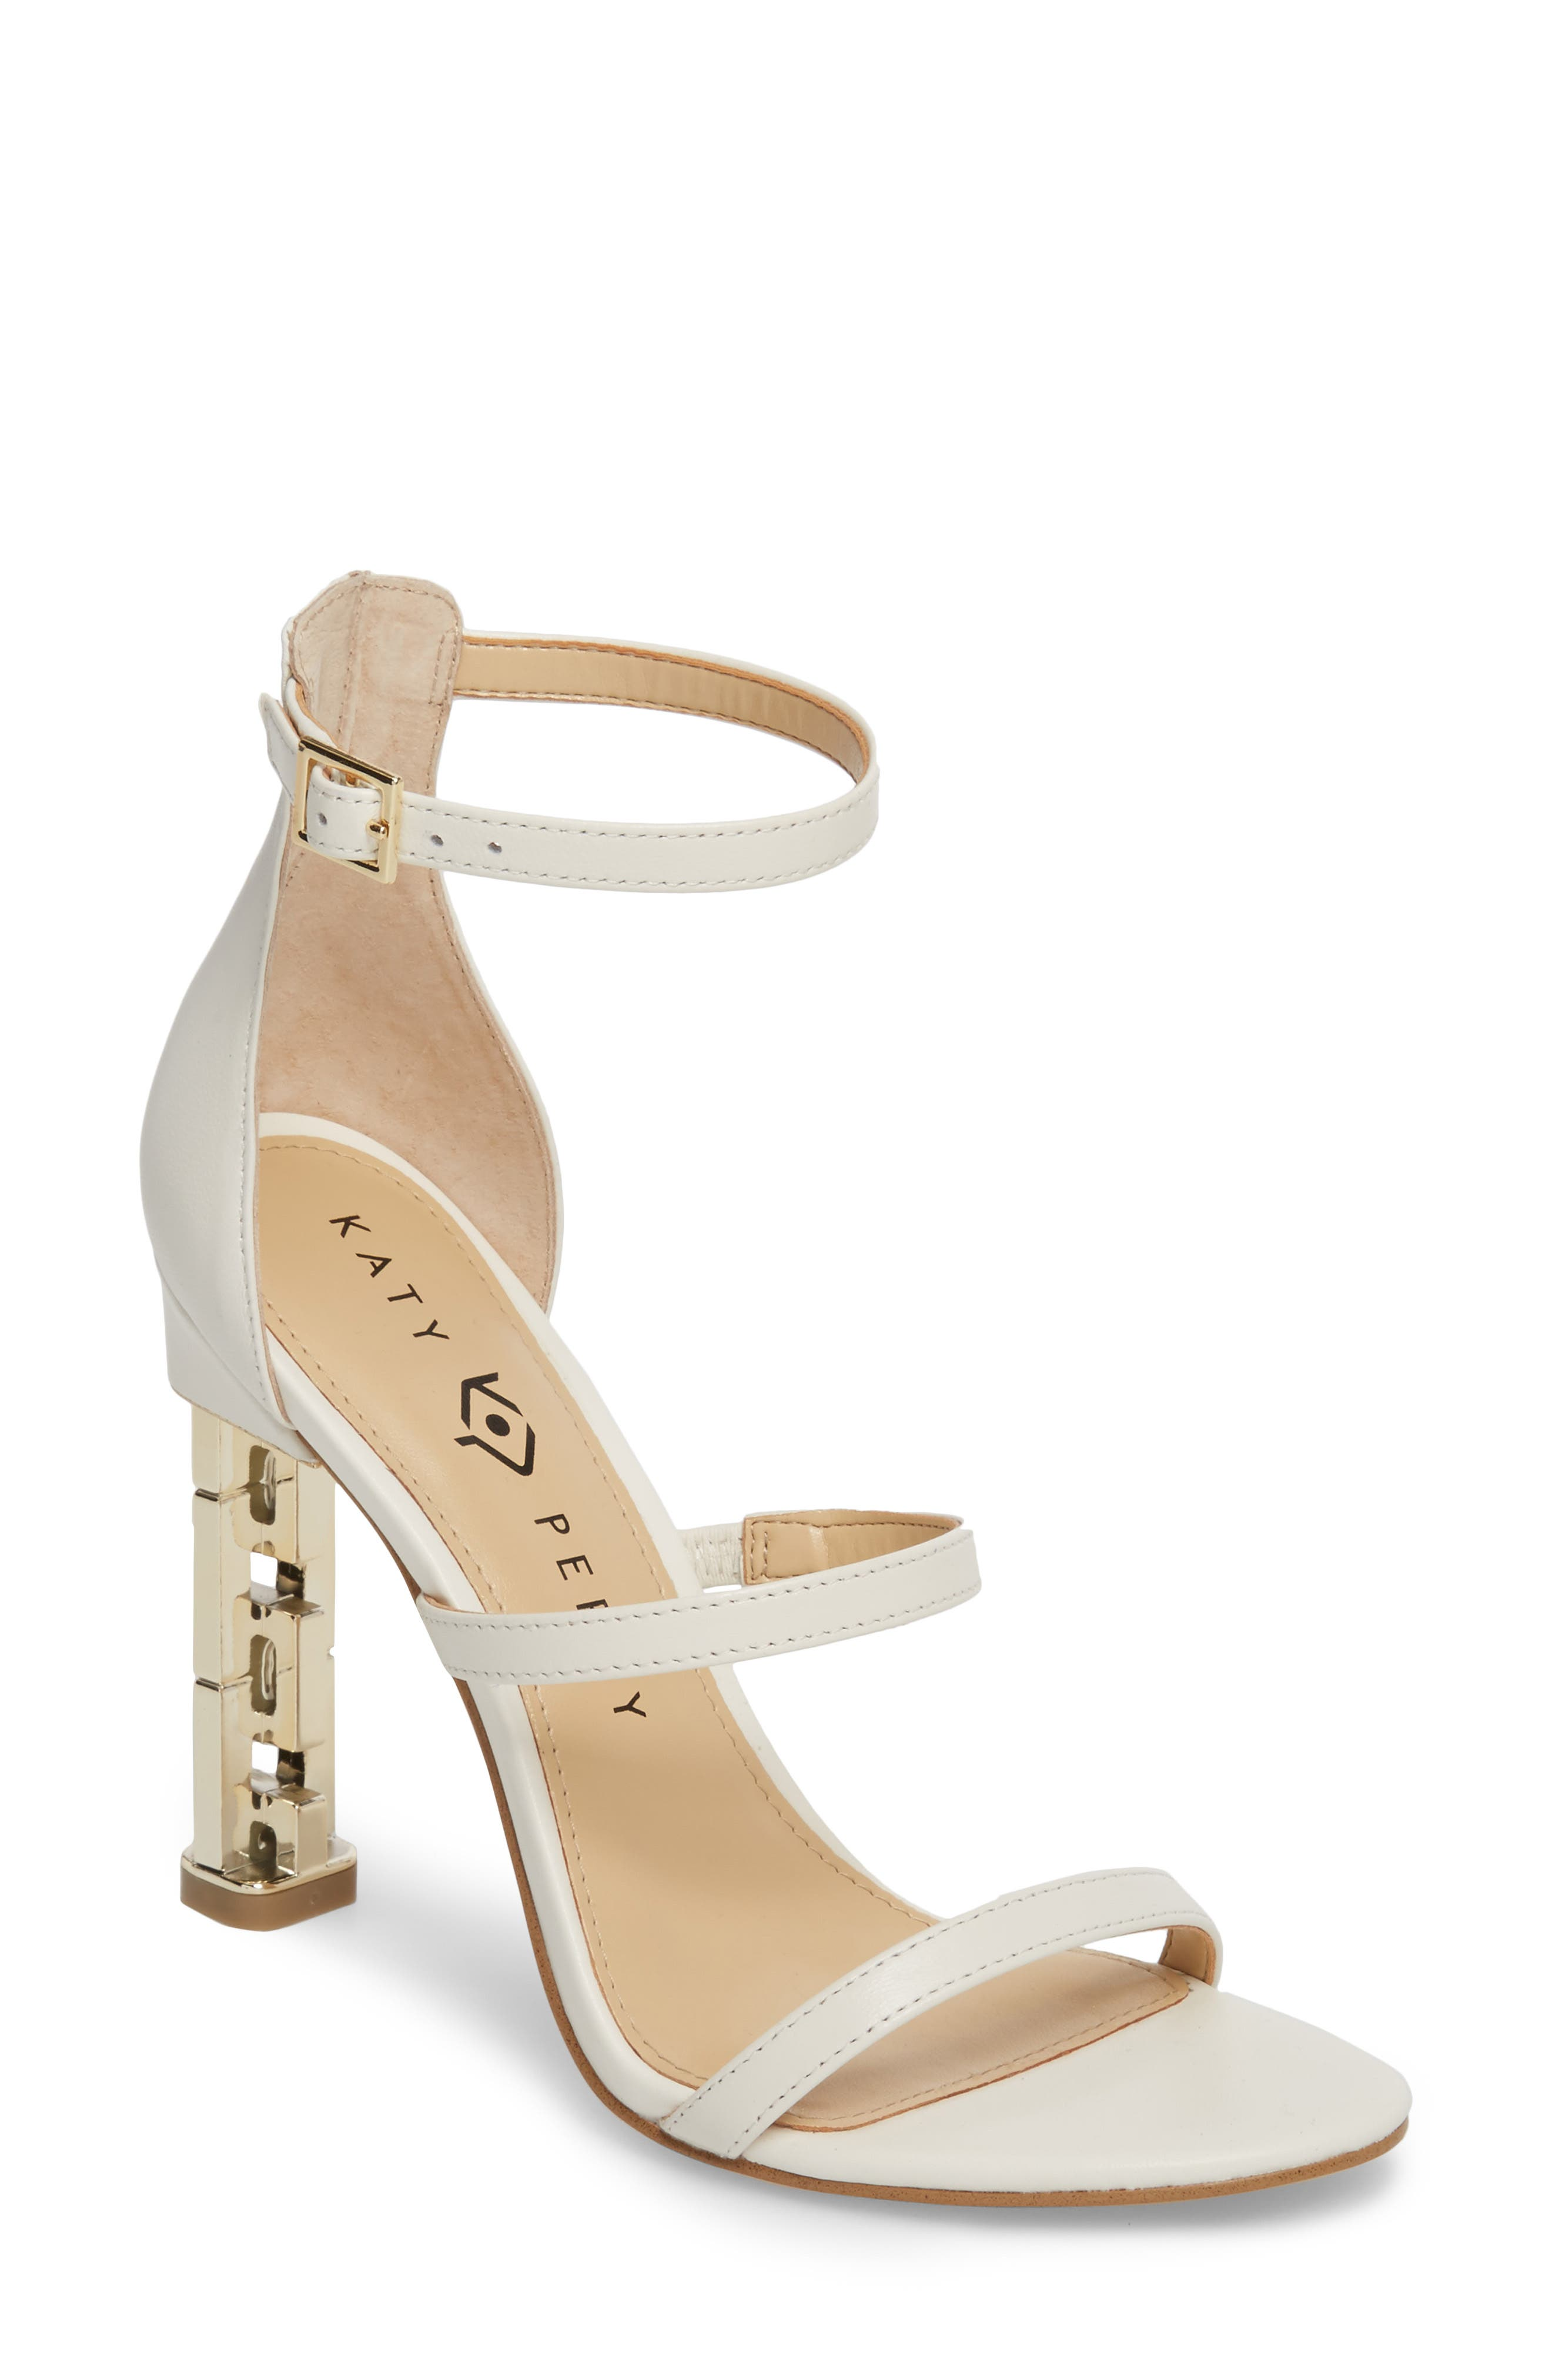 Ankle Strap Sandal,                         Main,                         color, IVORY LEATHER